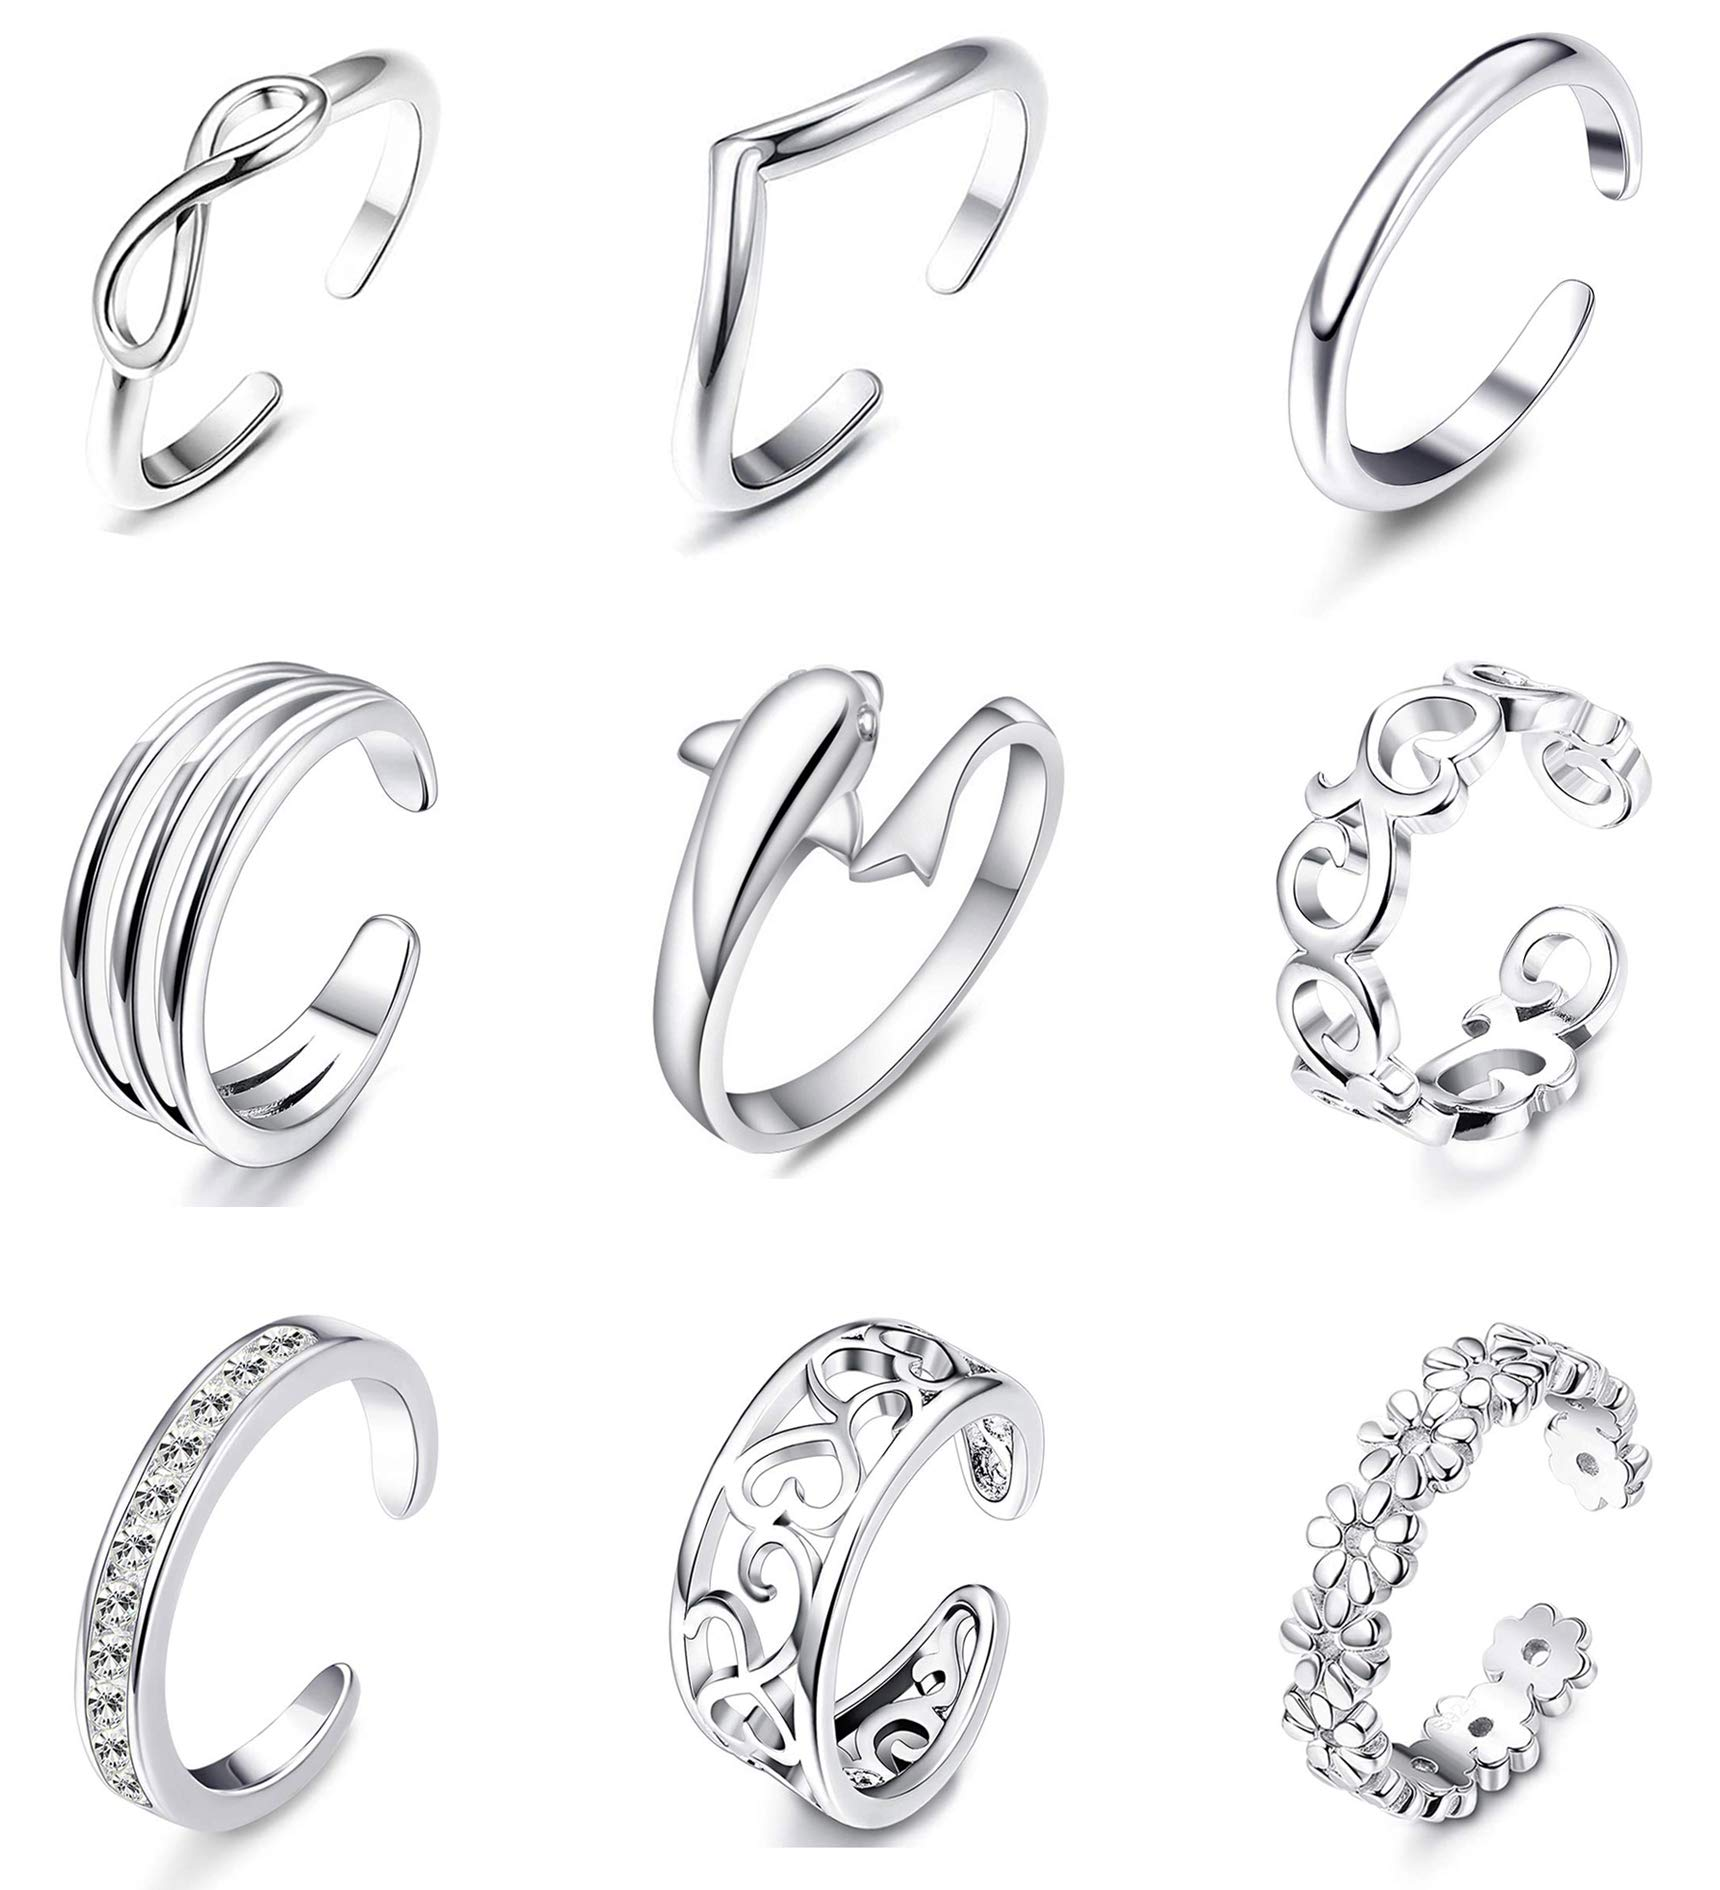 Meangel 9PCS Adjustable Toe Ring for Women Girls Open Tail Ring Flower Knot Simple Toe Ring Gifts Jewelry Set by Meangel